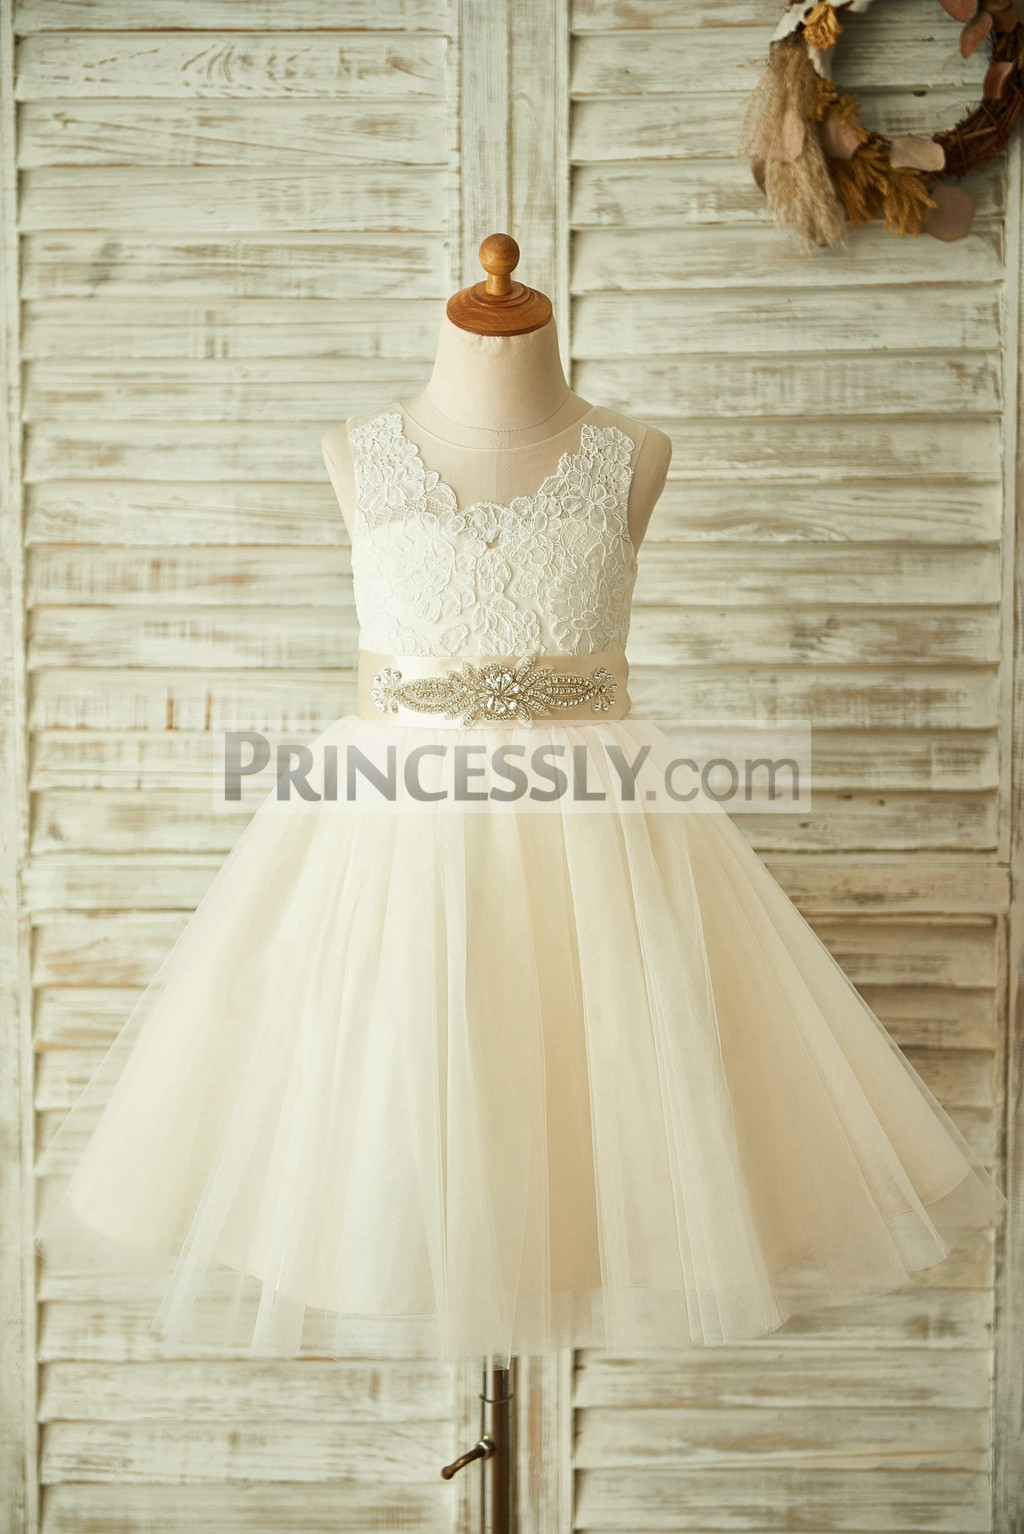 db3aaa296c2 Champagne Lace Tulle Sheer Back Flower Girl Dress with Beaded Sash ...